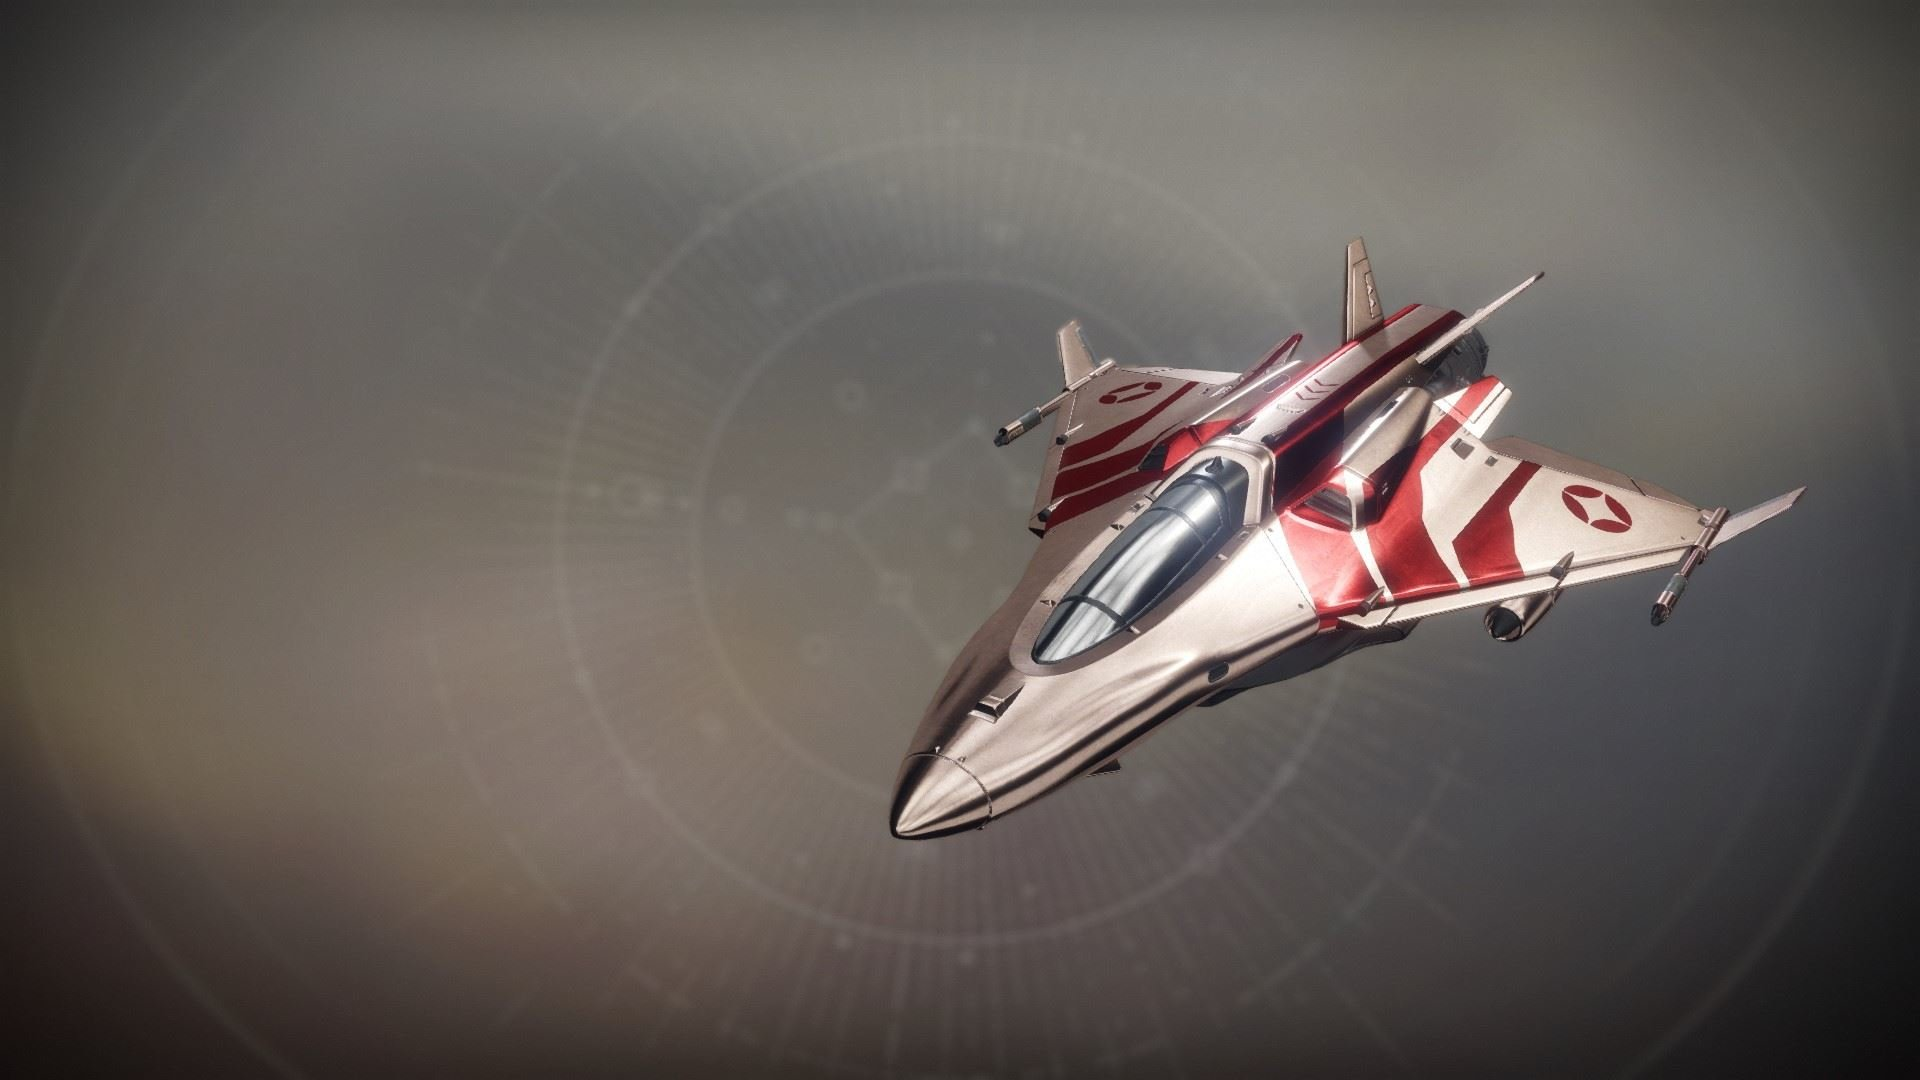 An in-game render of the Currus Gloriae XLII.